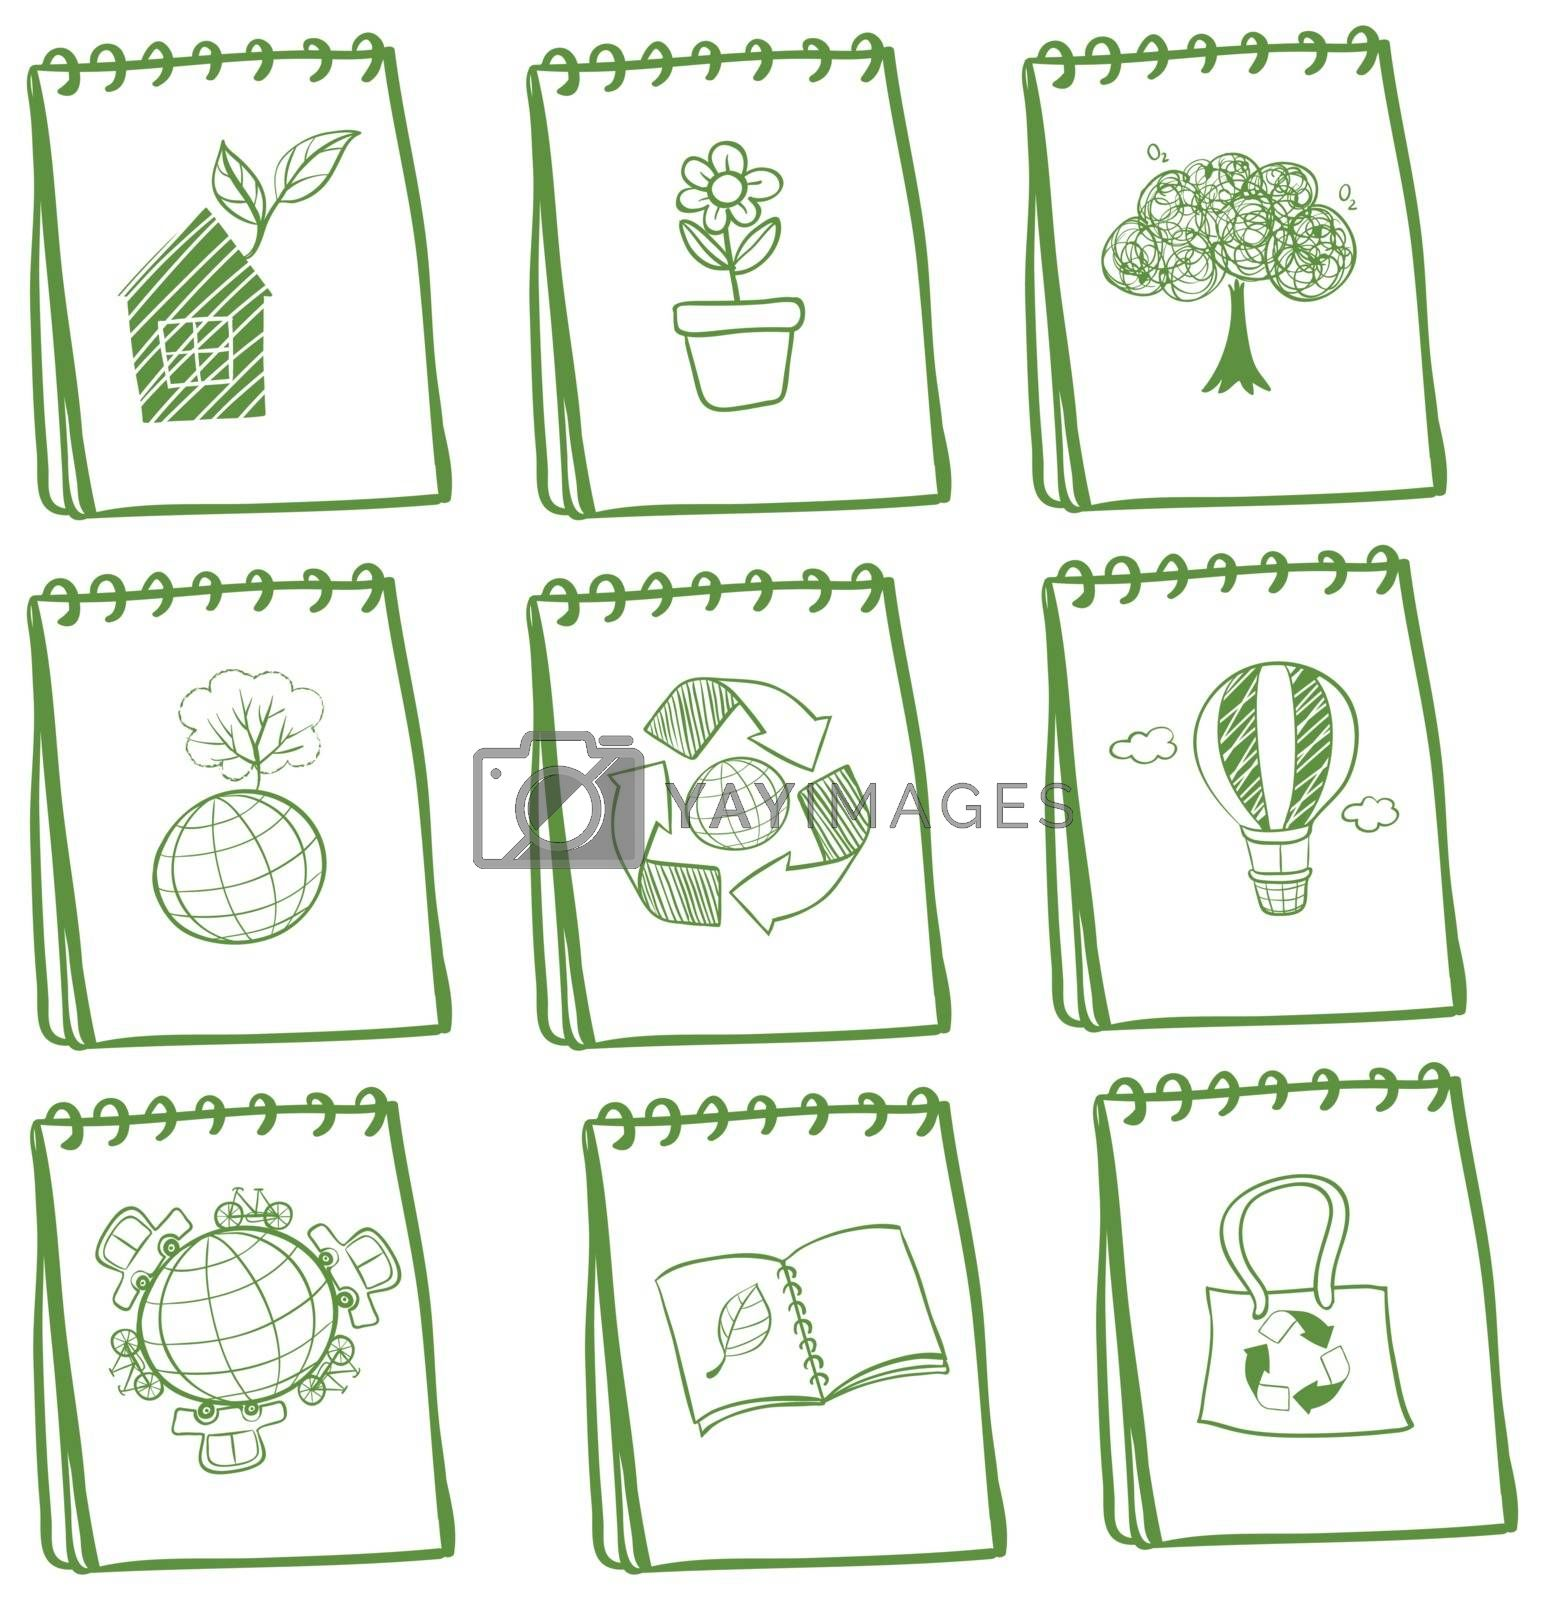 Illustration of the notebooks with eco-friendly drawings on a white background